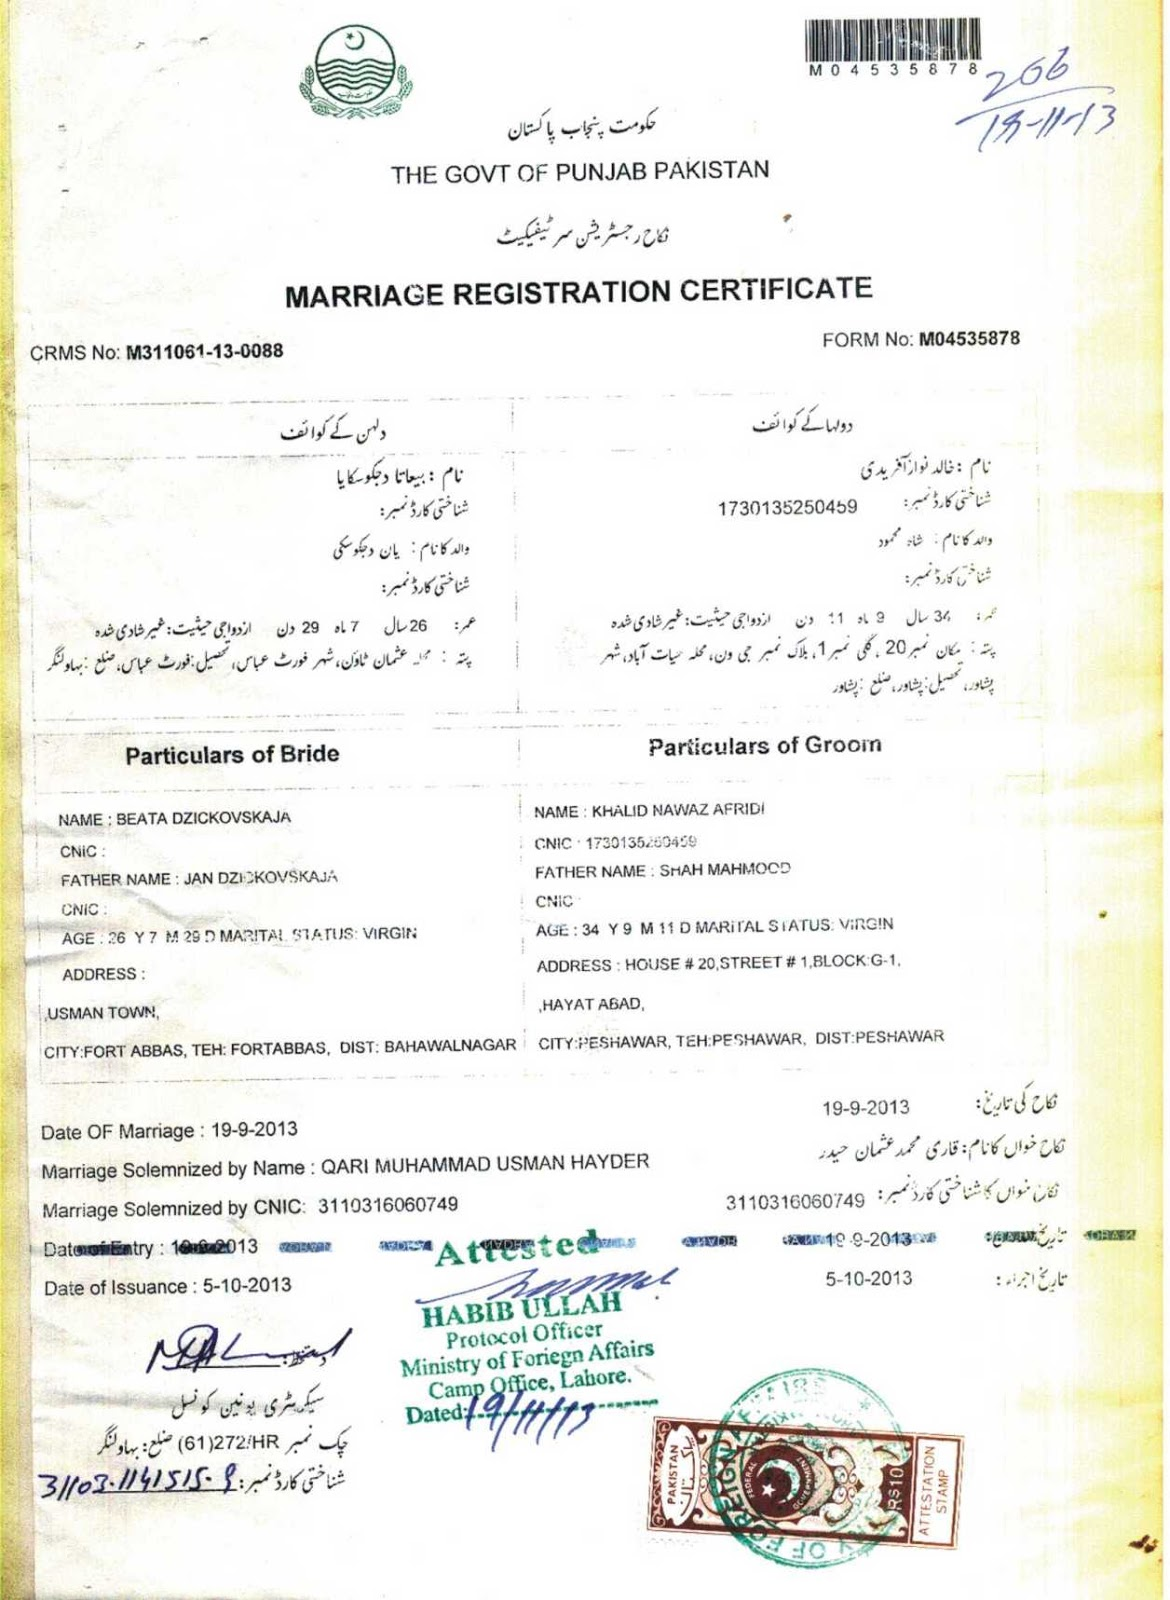 nikah nama divorced deed birth certificate and all other